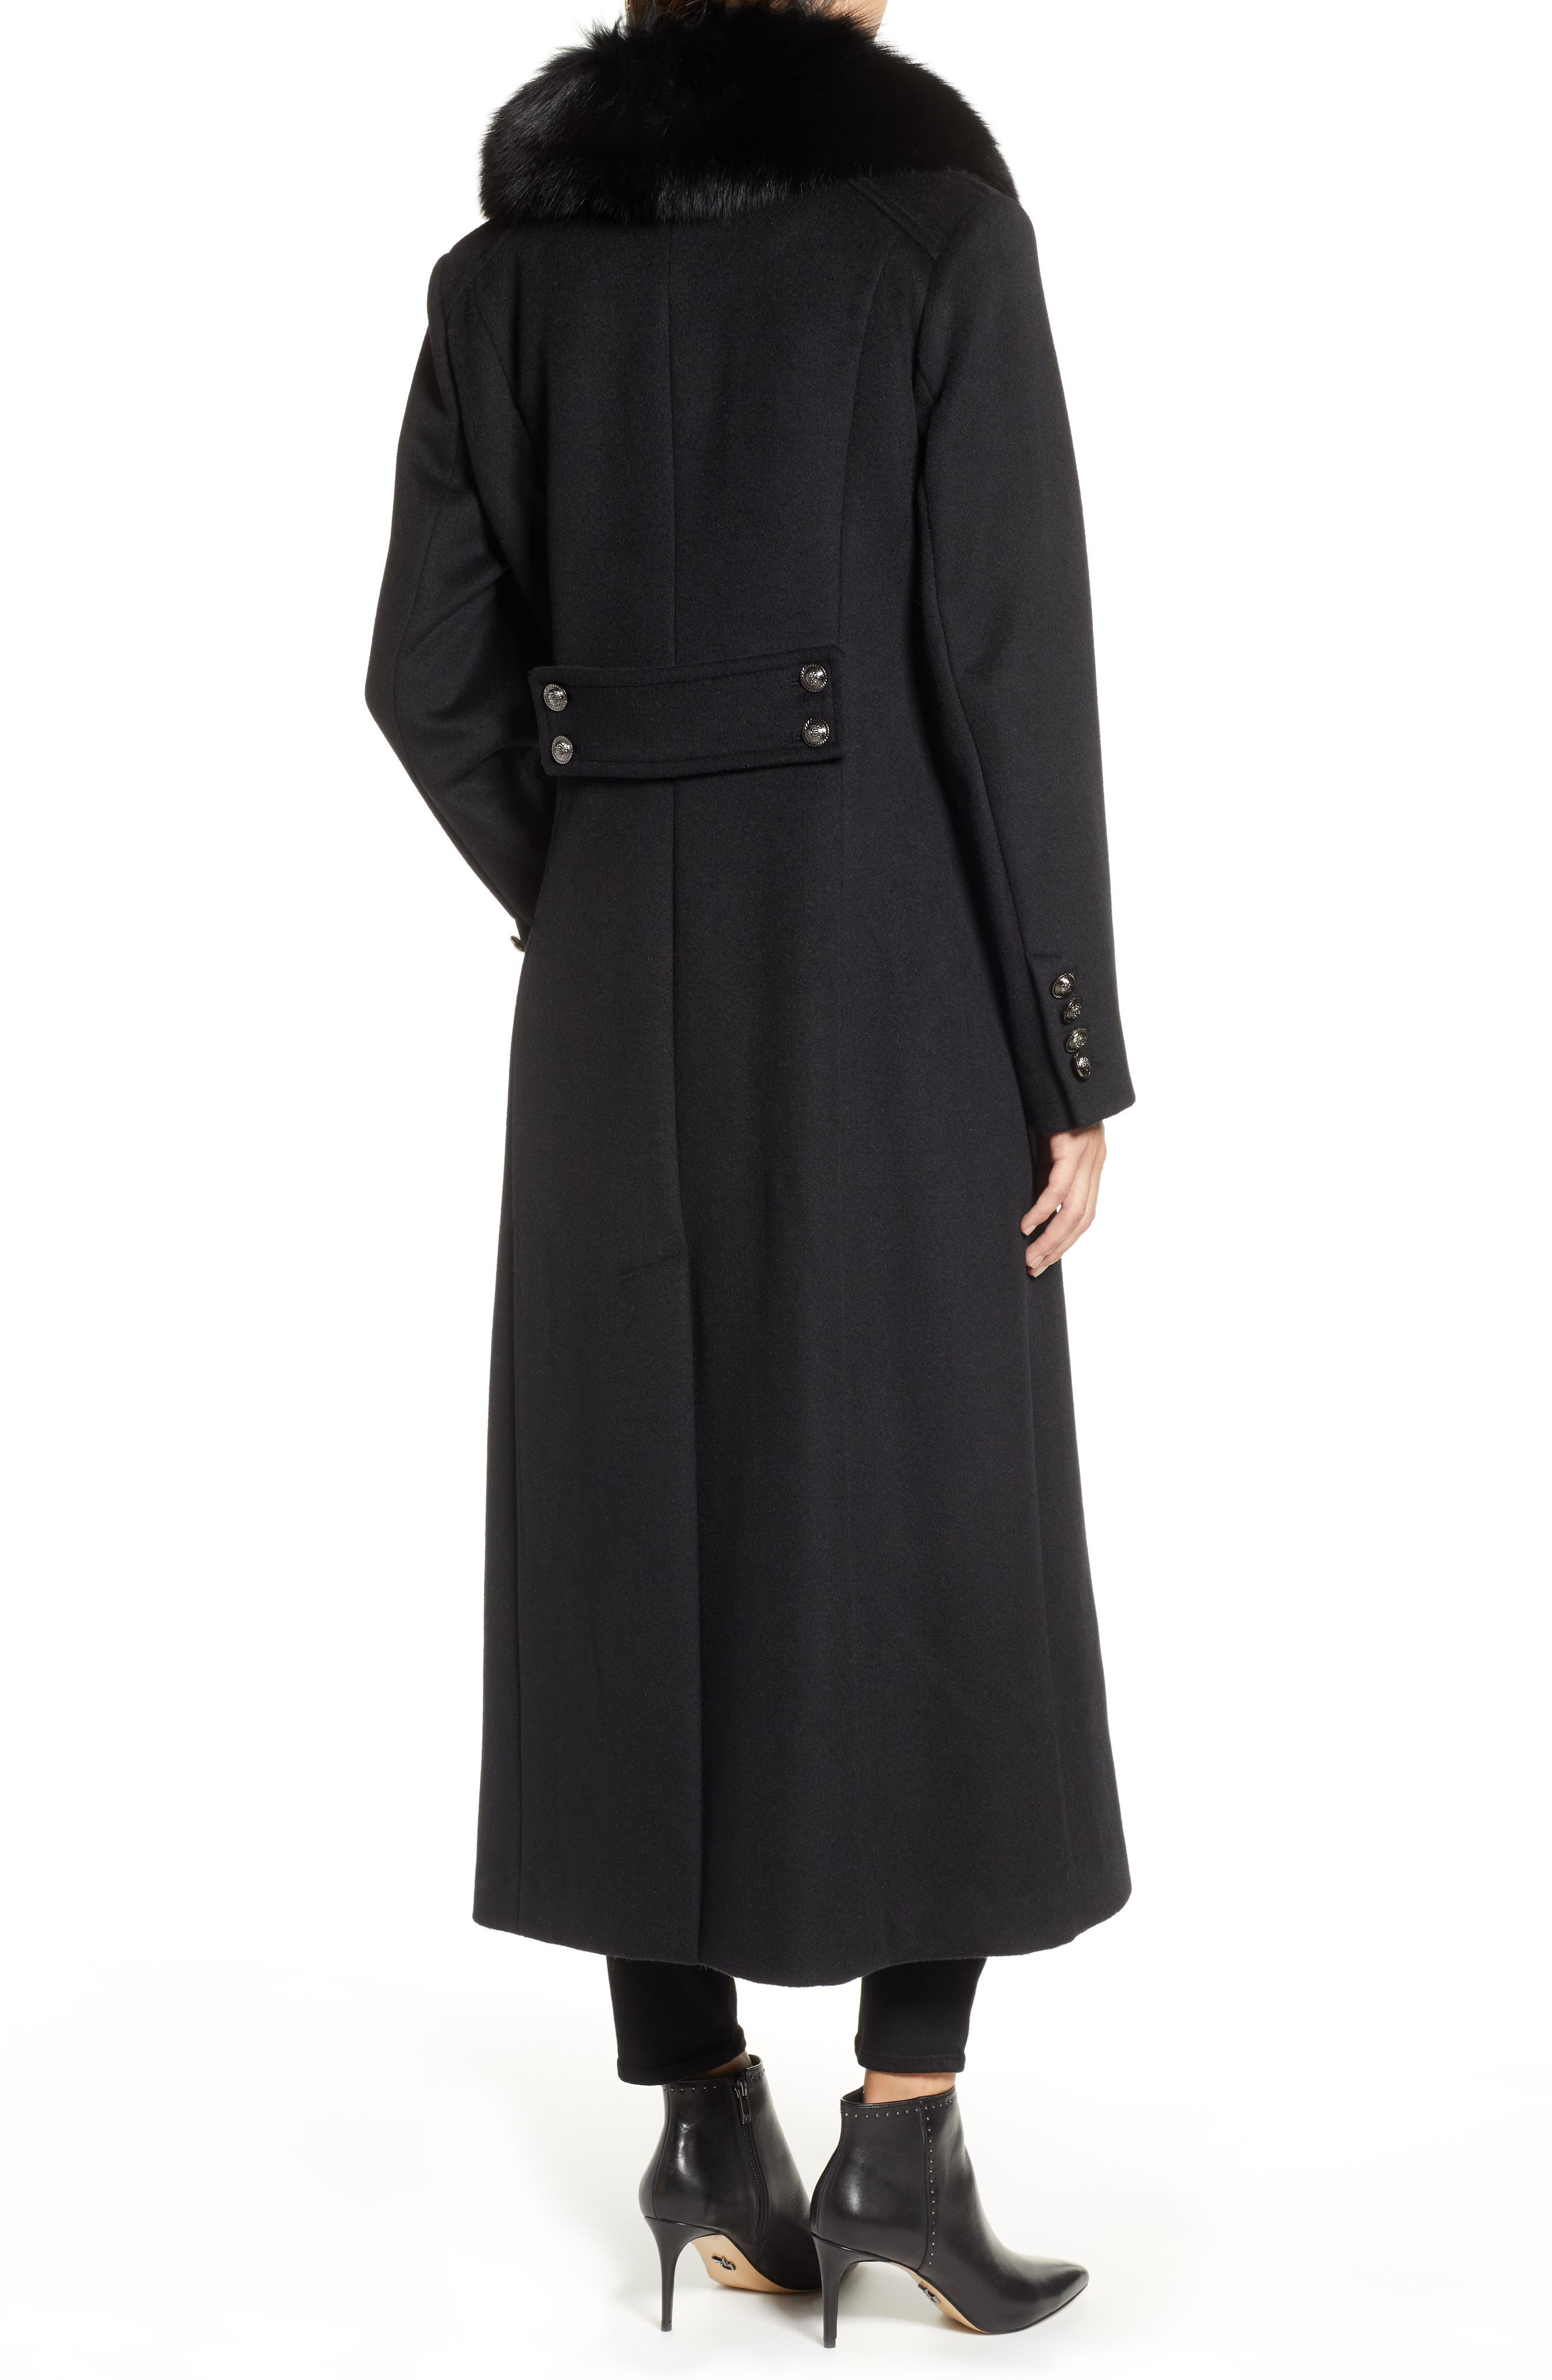 1 MADISON,                             Double Breasted Military Wool Coat with Genuine Fox Fur Shawl,                             Alternate thumbnail 2, color,                             BLACK